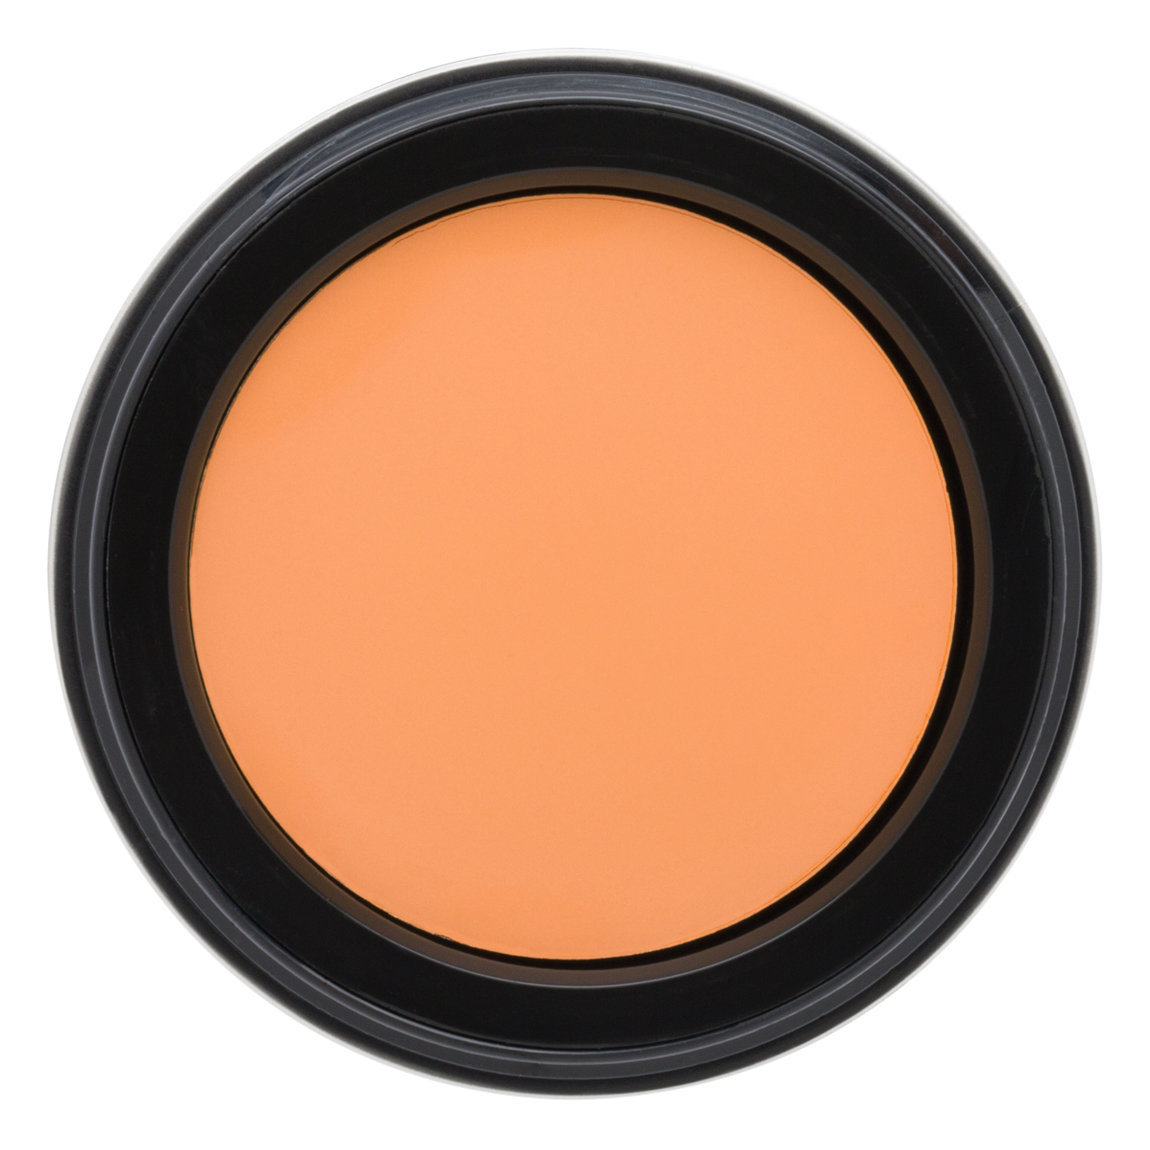 Benefit Cosmetics Boi-ing Industrial Strength Concealer 03 Medium alternative view 1 - product swatch.